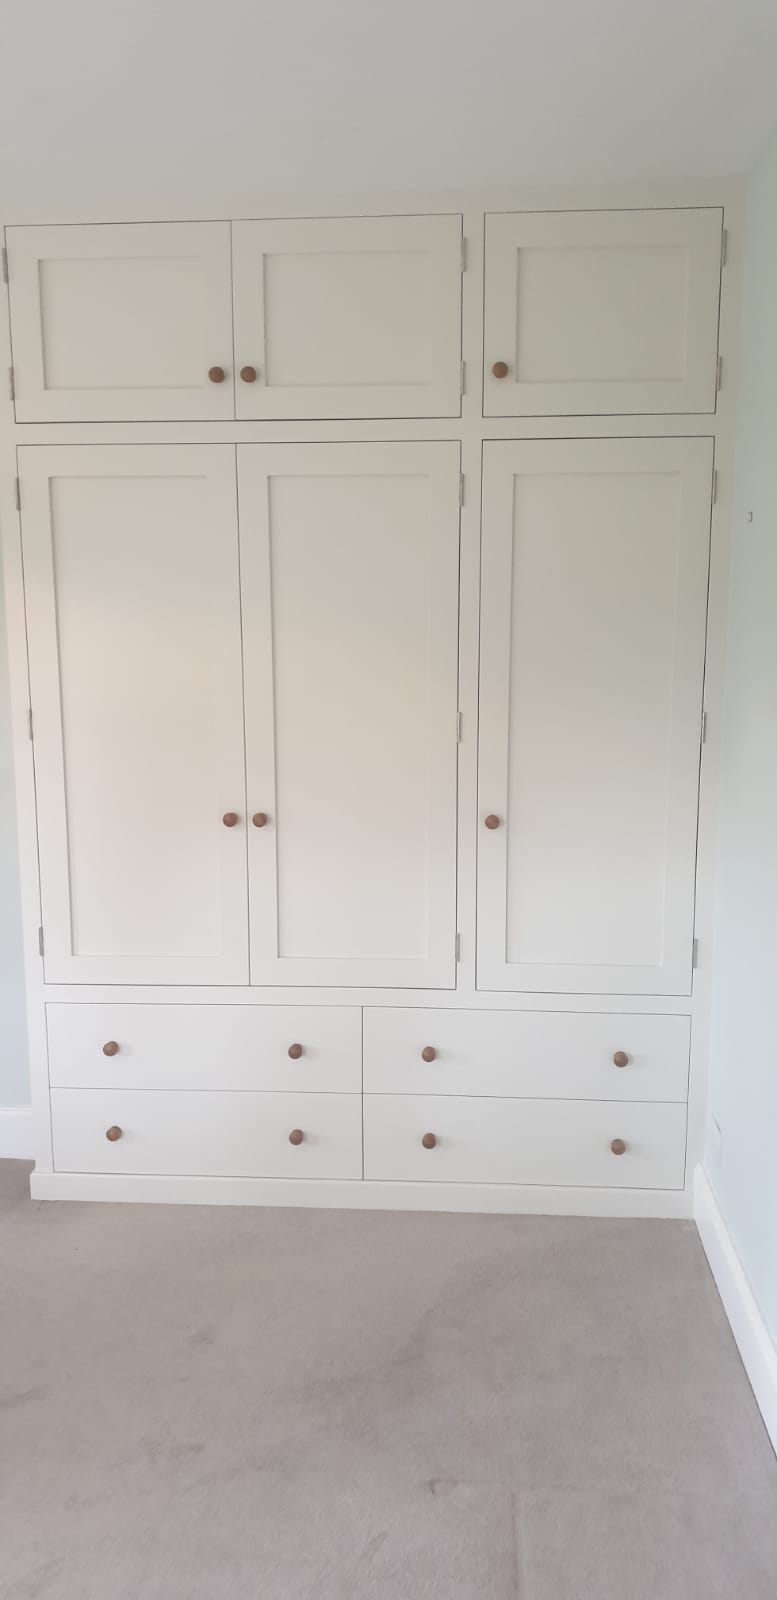 boars-hill-wardrobe-project-01